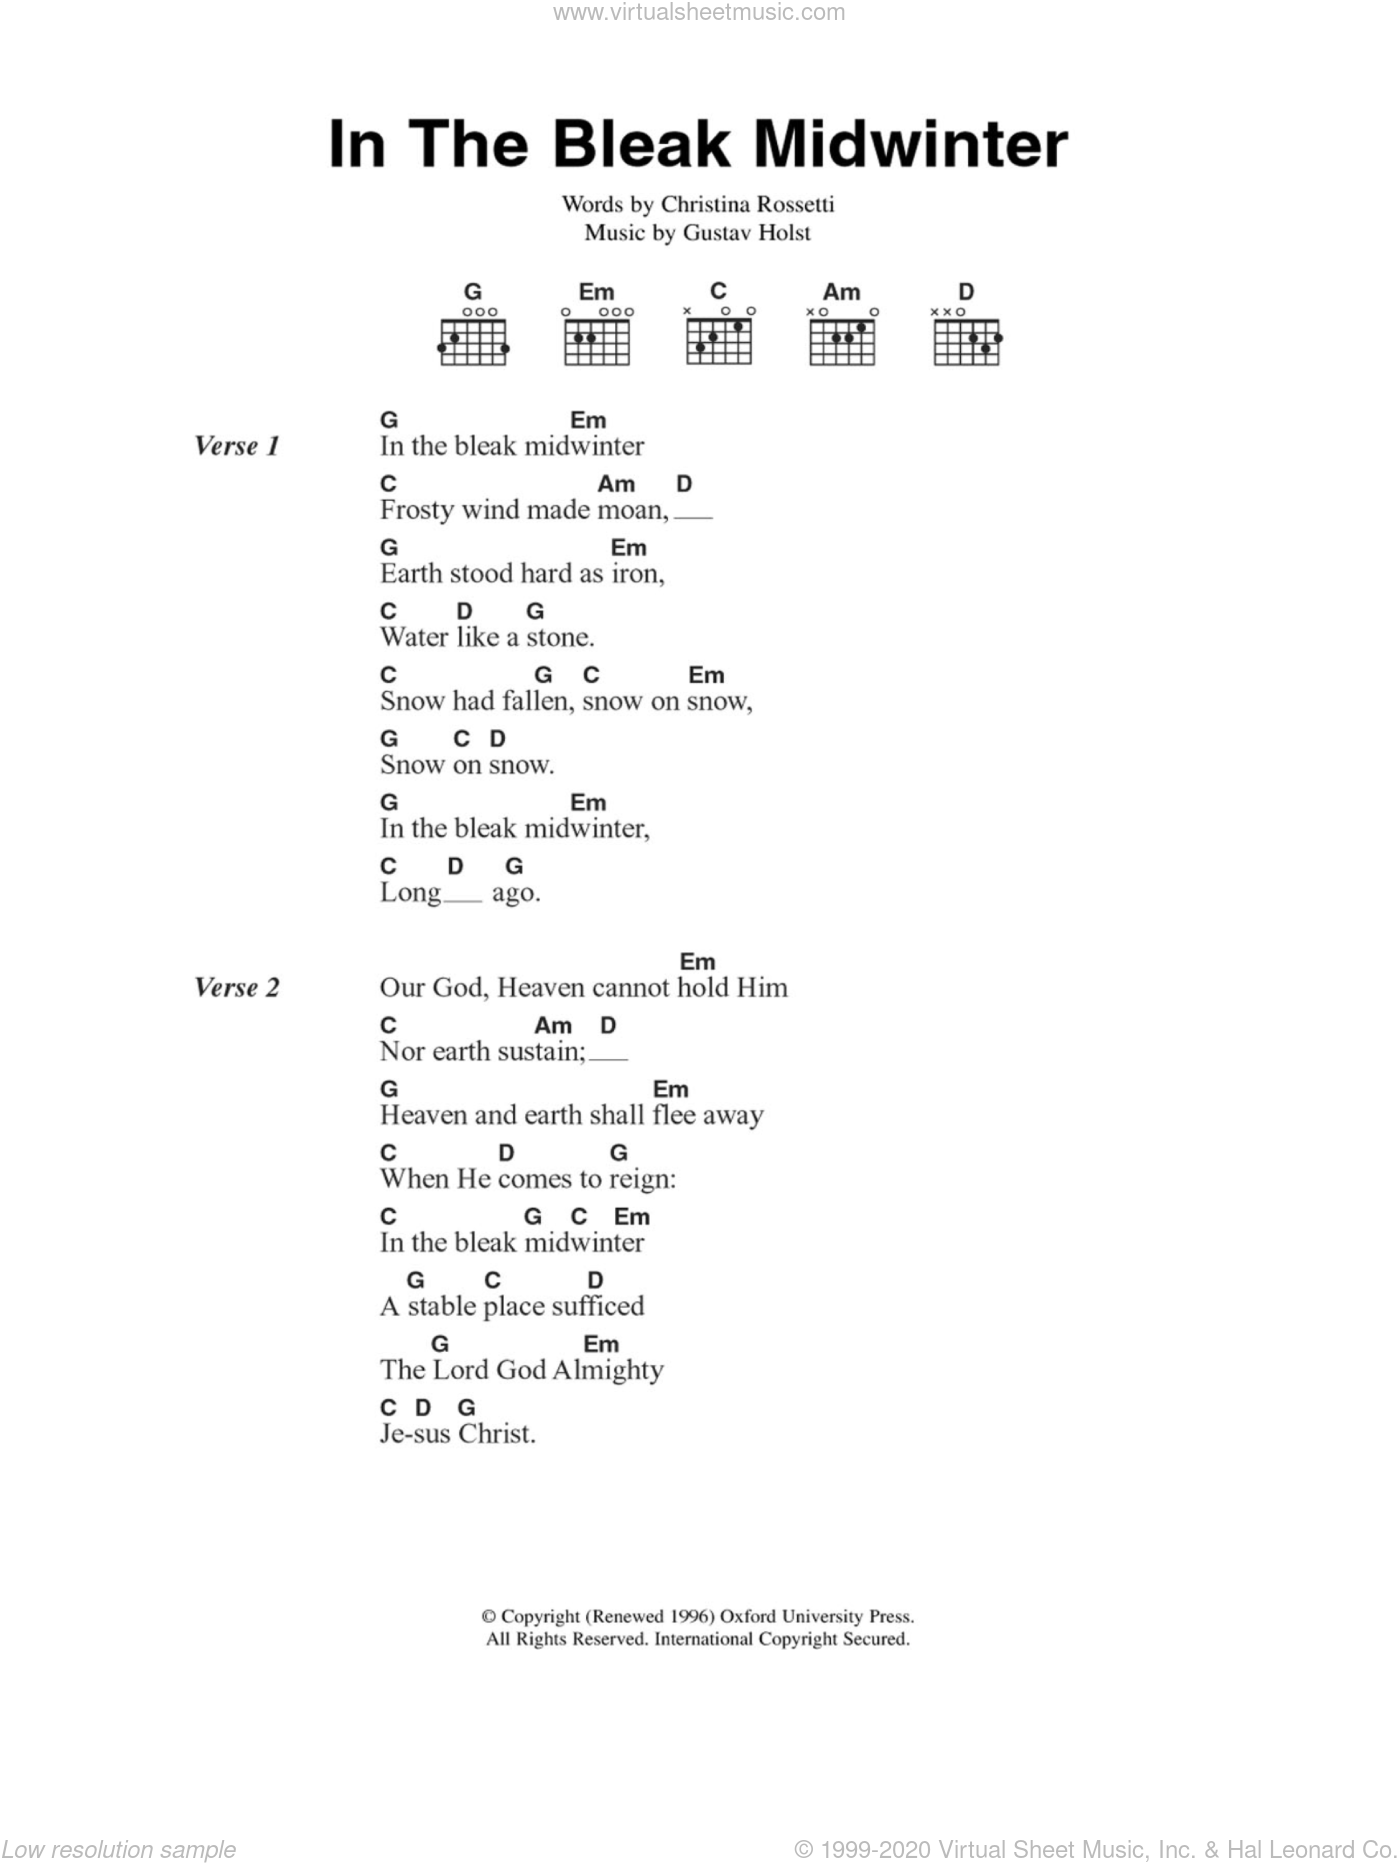 In The Bleak Midwinter sheet music for guitar (chords) by Christina Rossetti and Gustav Holst